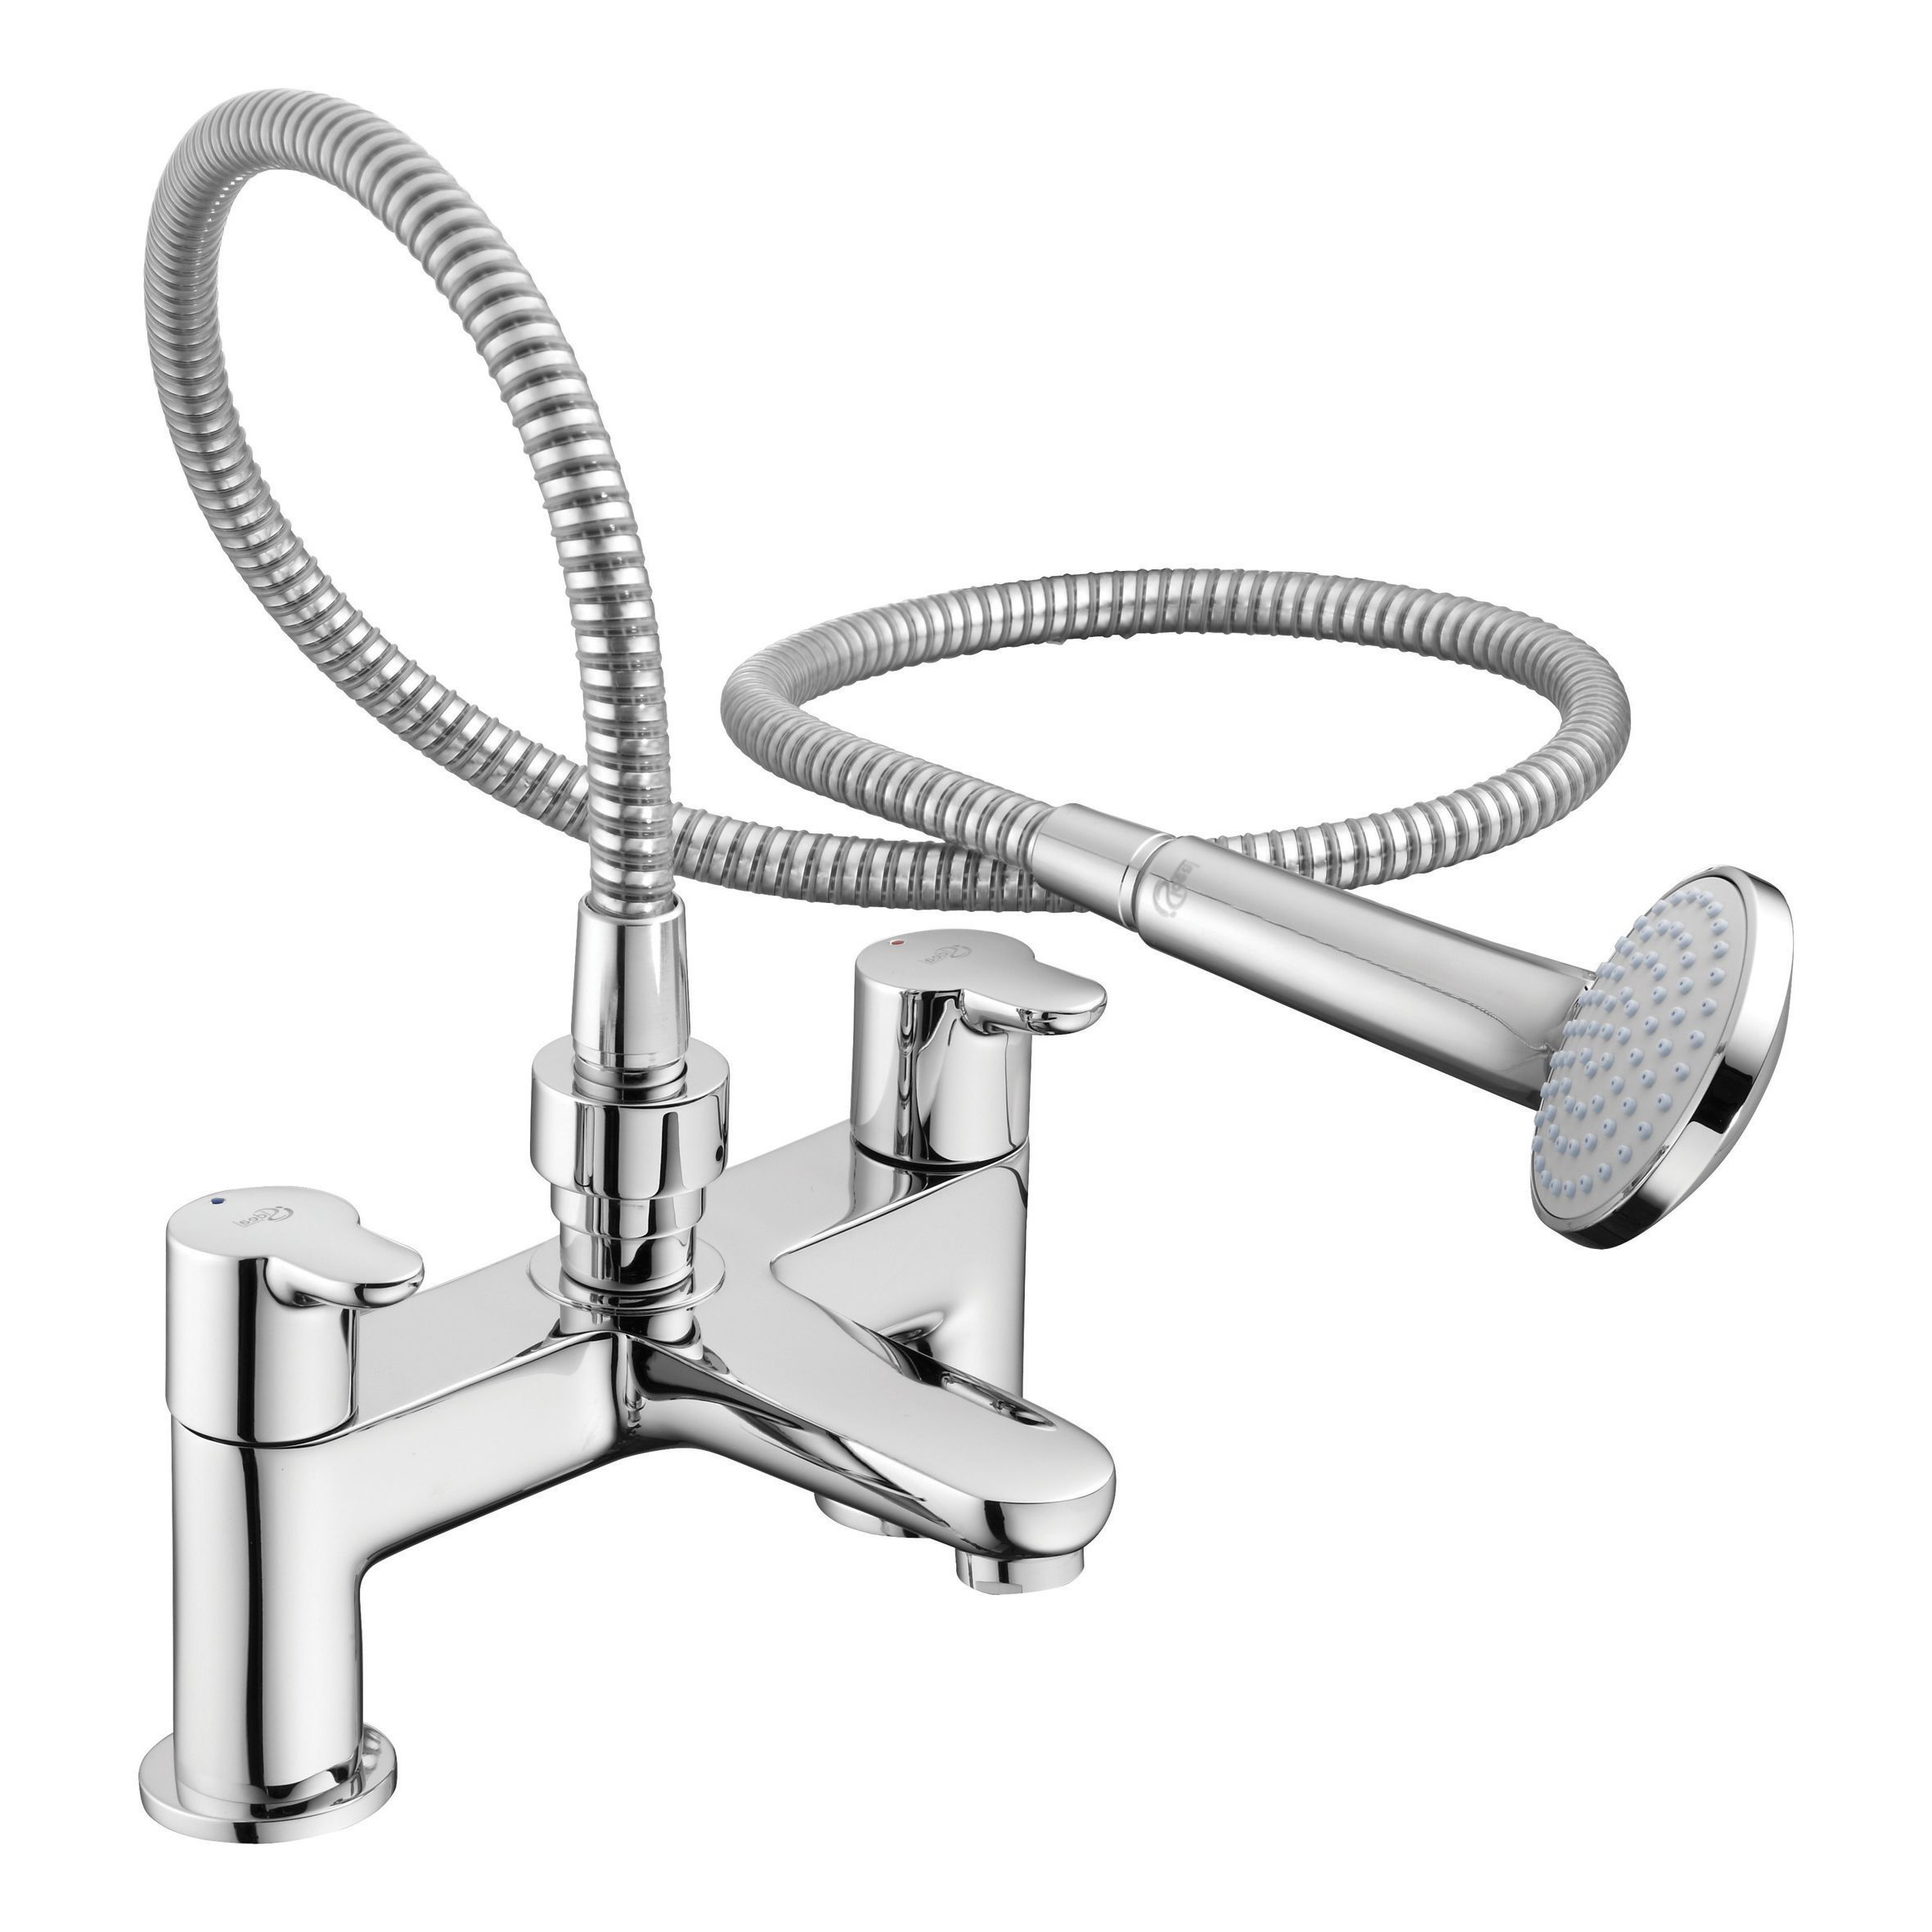 Ideal Standard Concept Chrome Bath Shower Mixer Tap | Departments ...